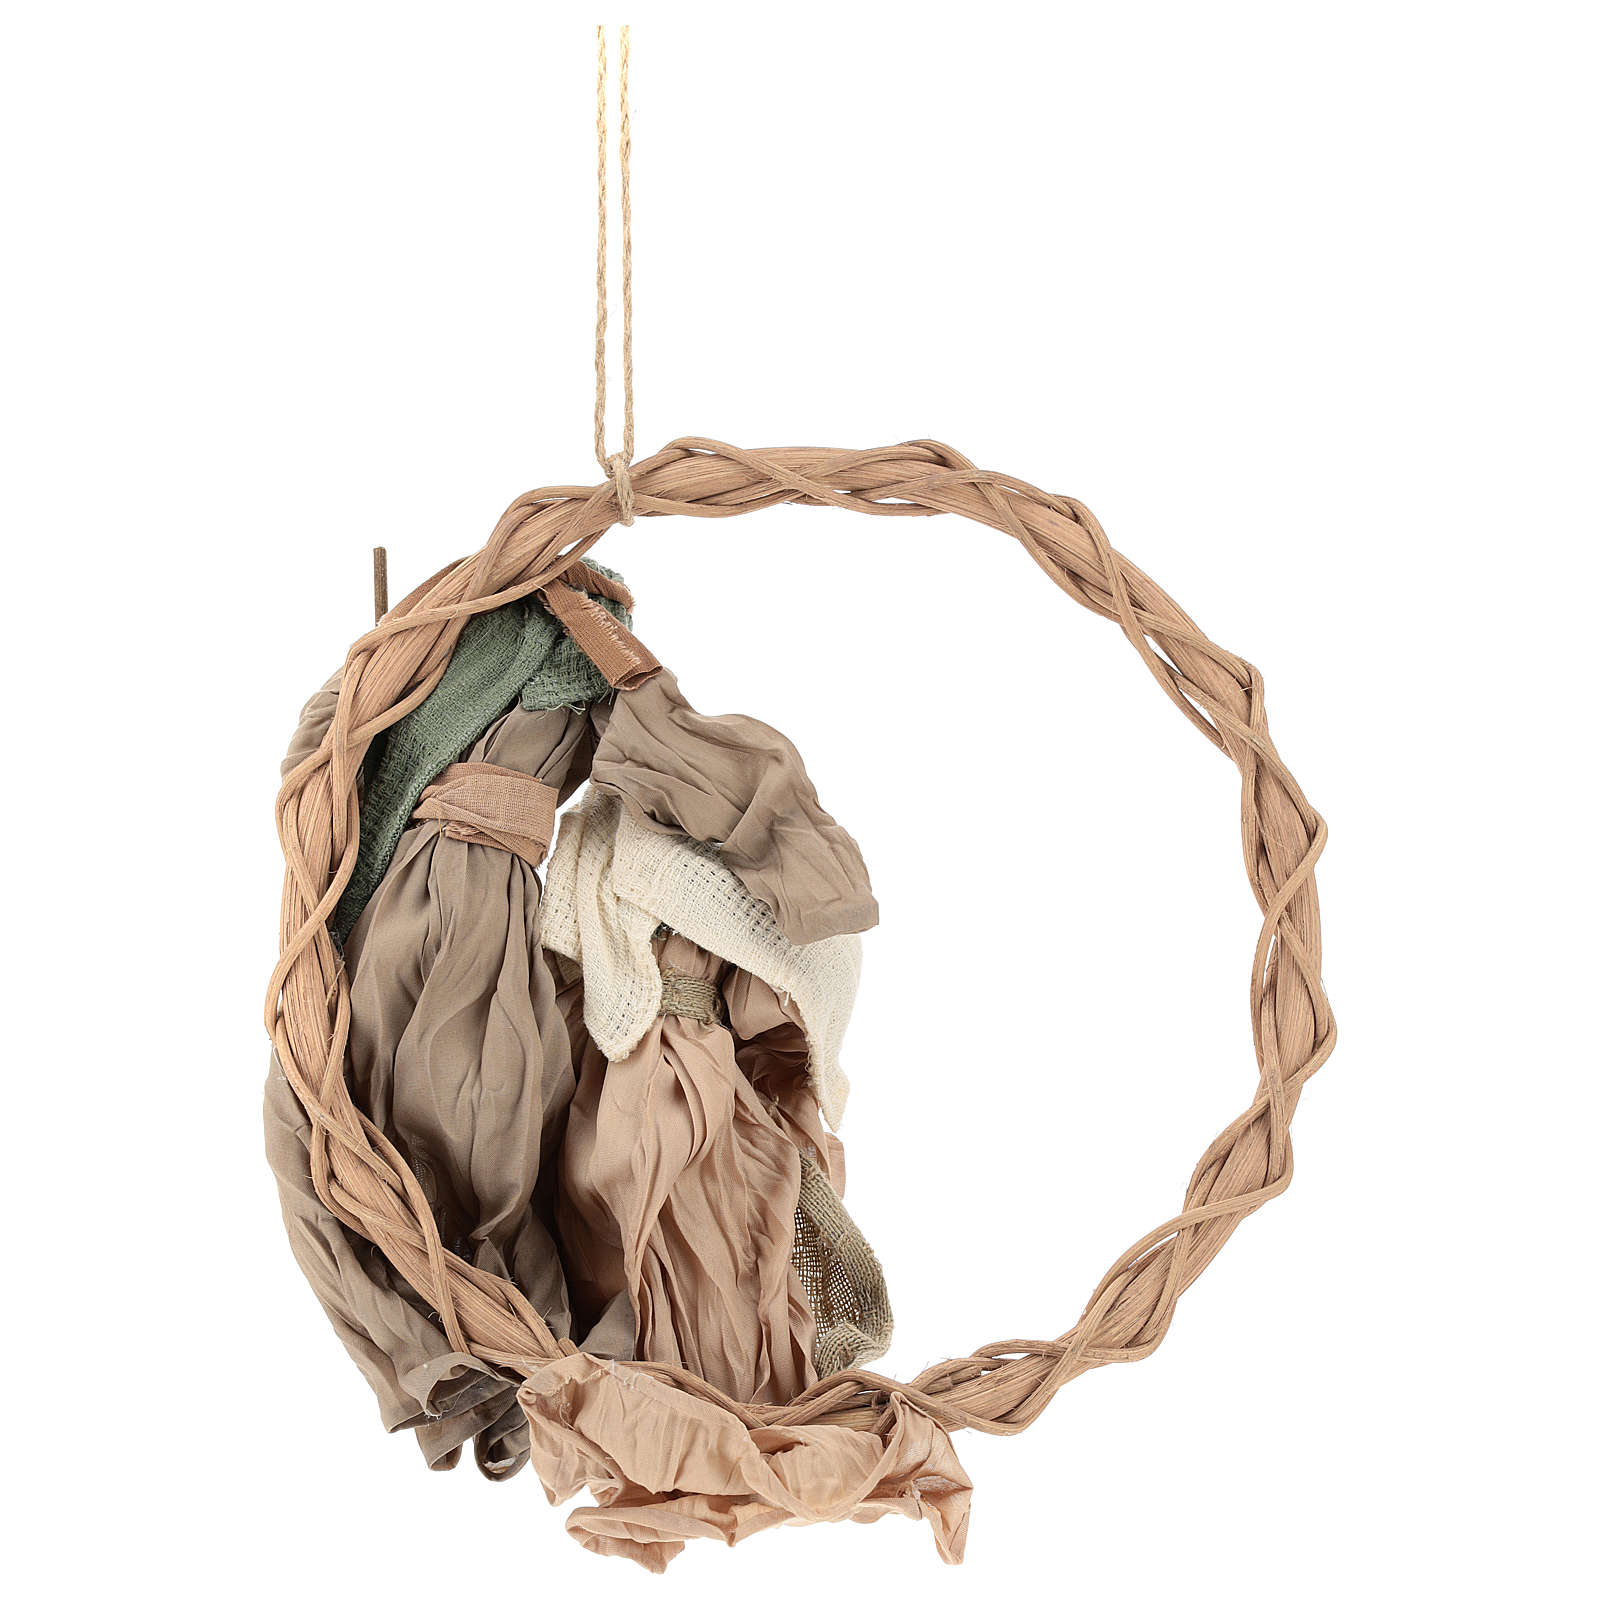 Wreath with Nativity in terracotta with green and beige fabric, Shabby Chic style 3